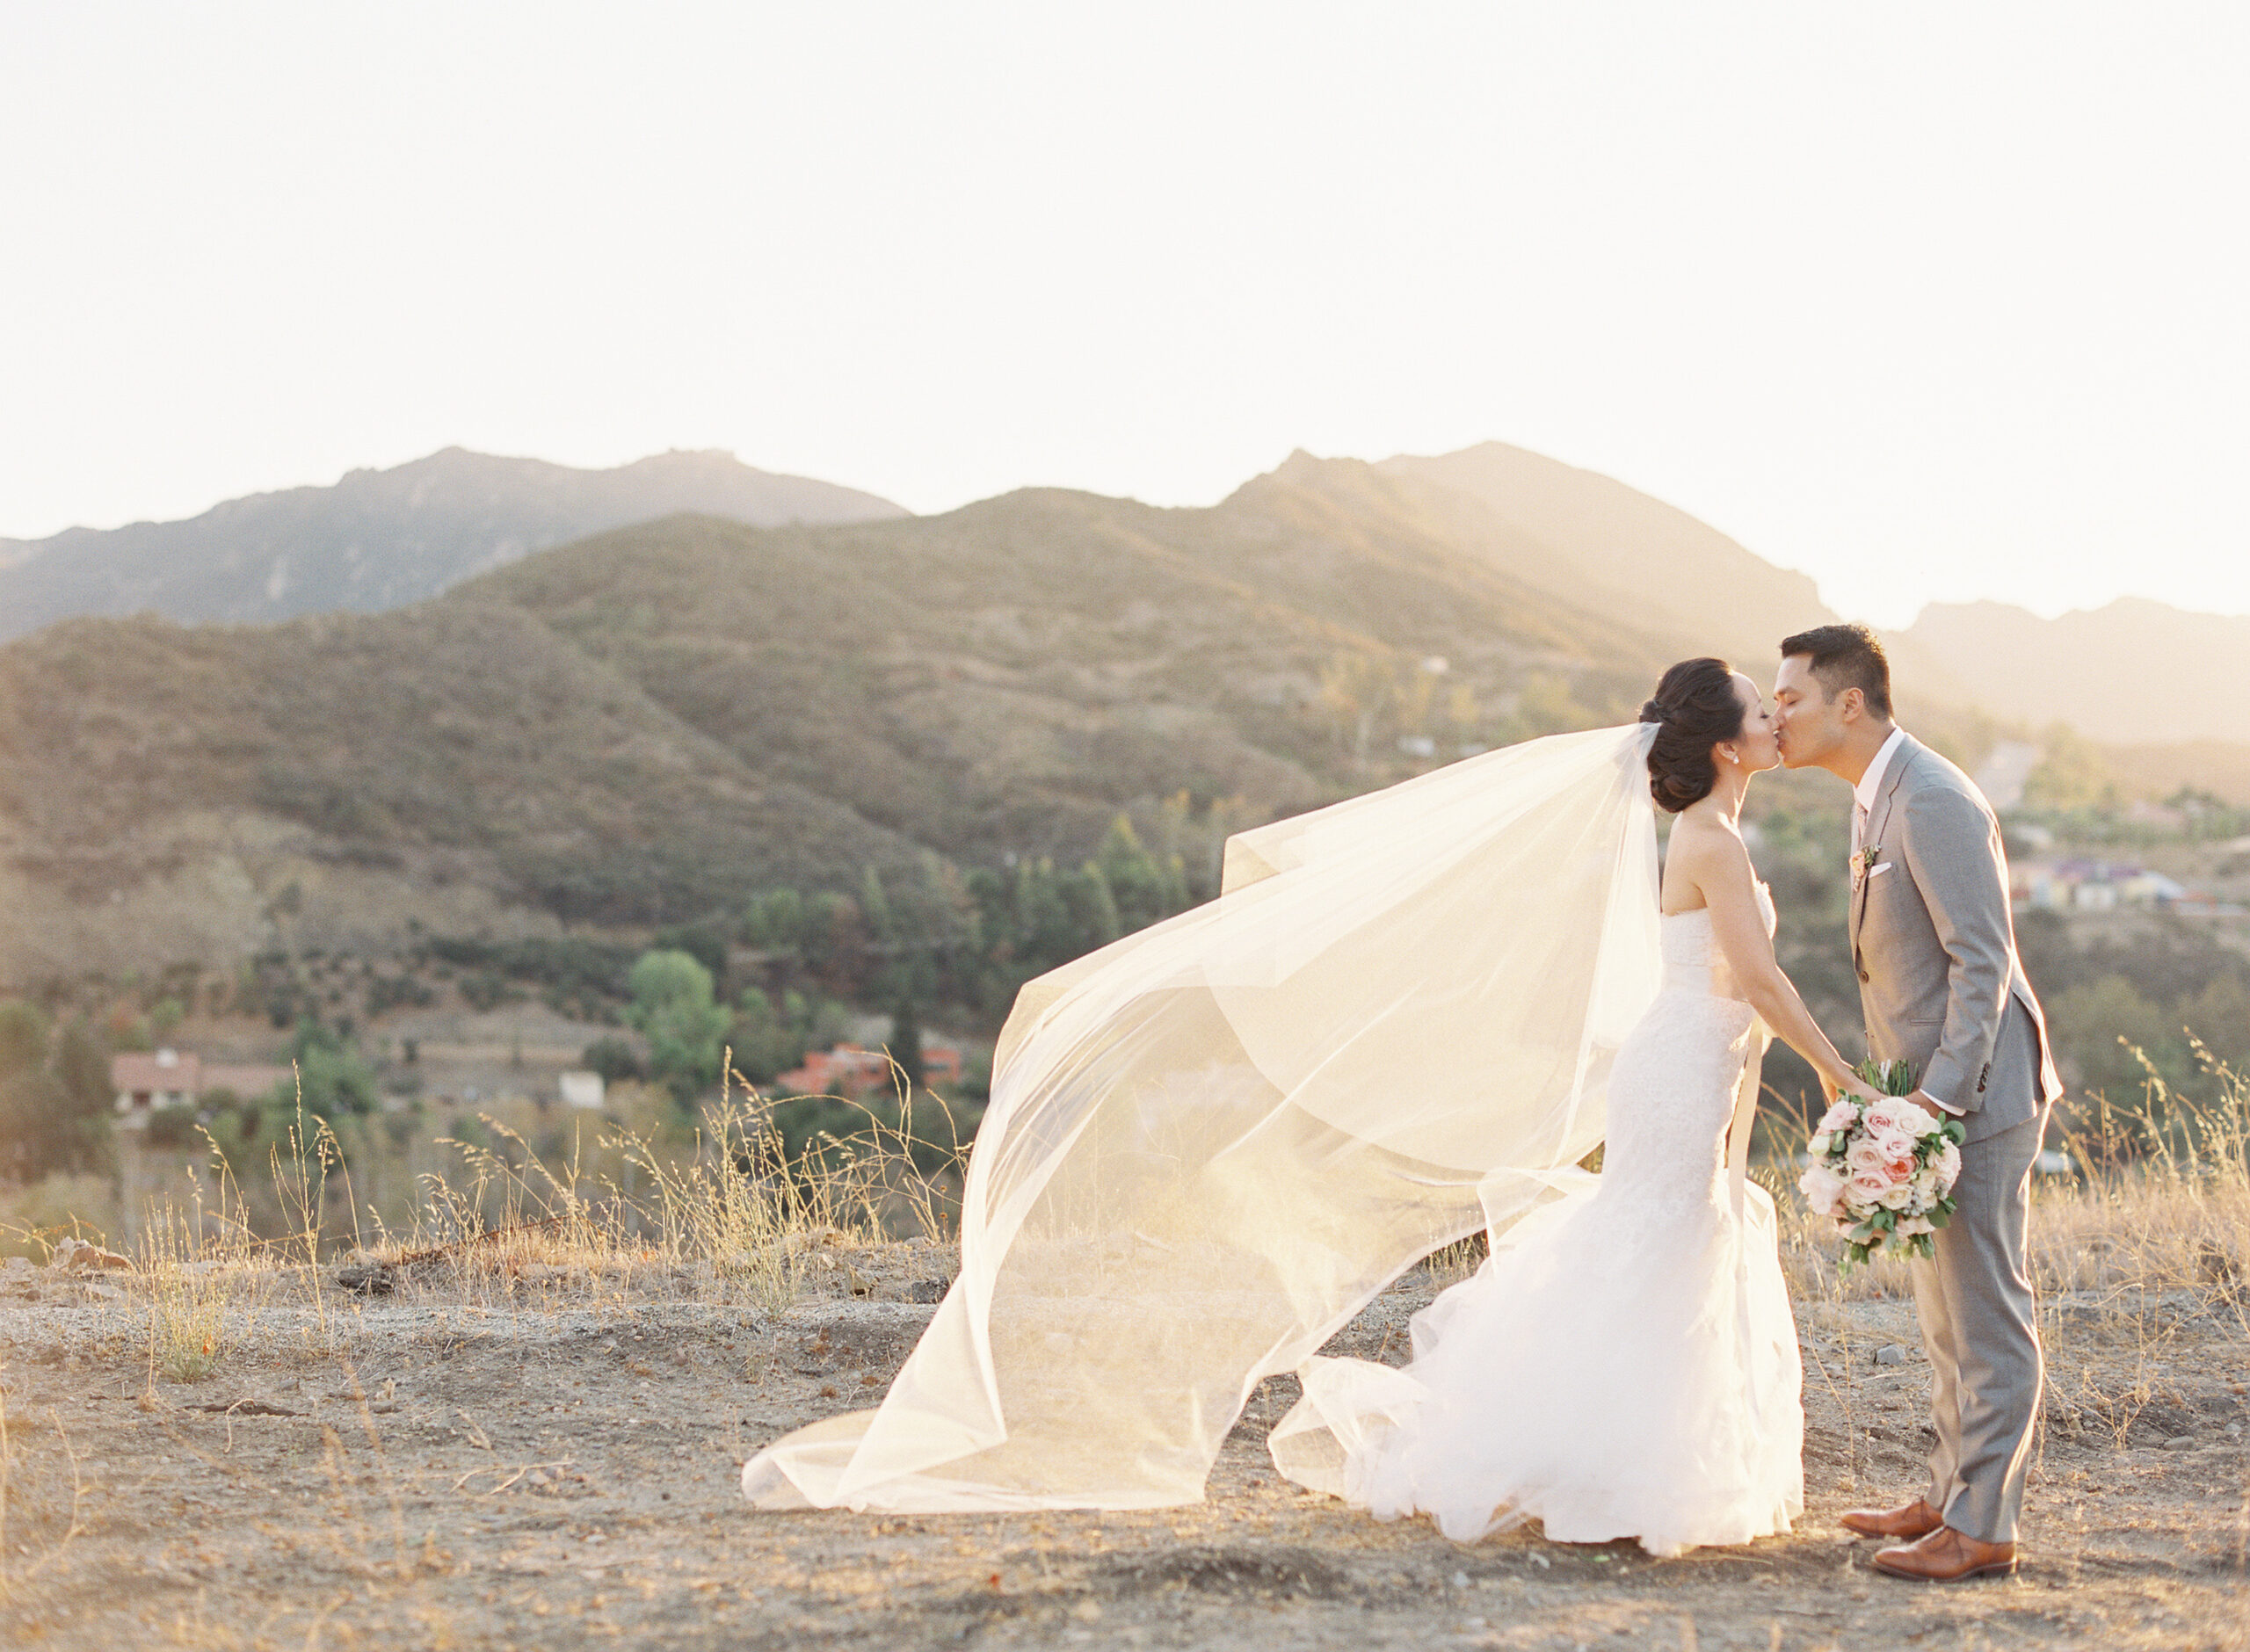 Wedding couple kissing at sunset on rolling hills at Triunfo Vineyard